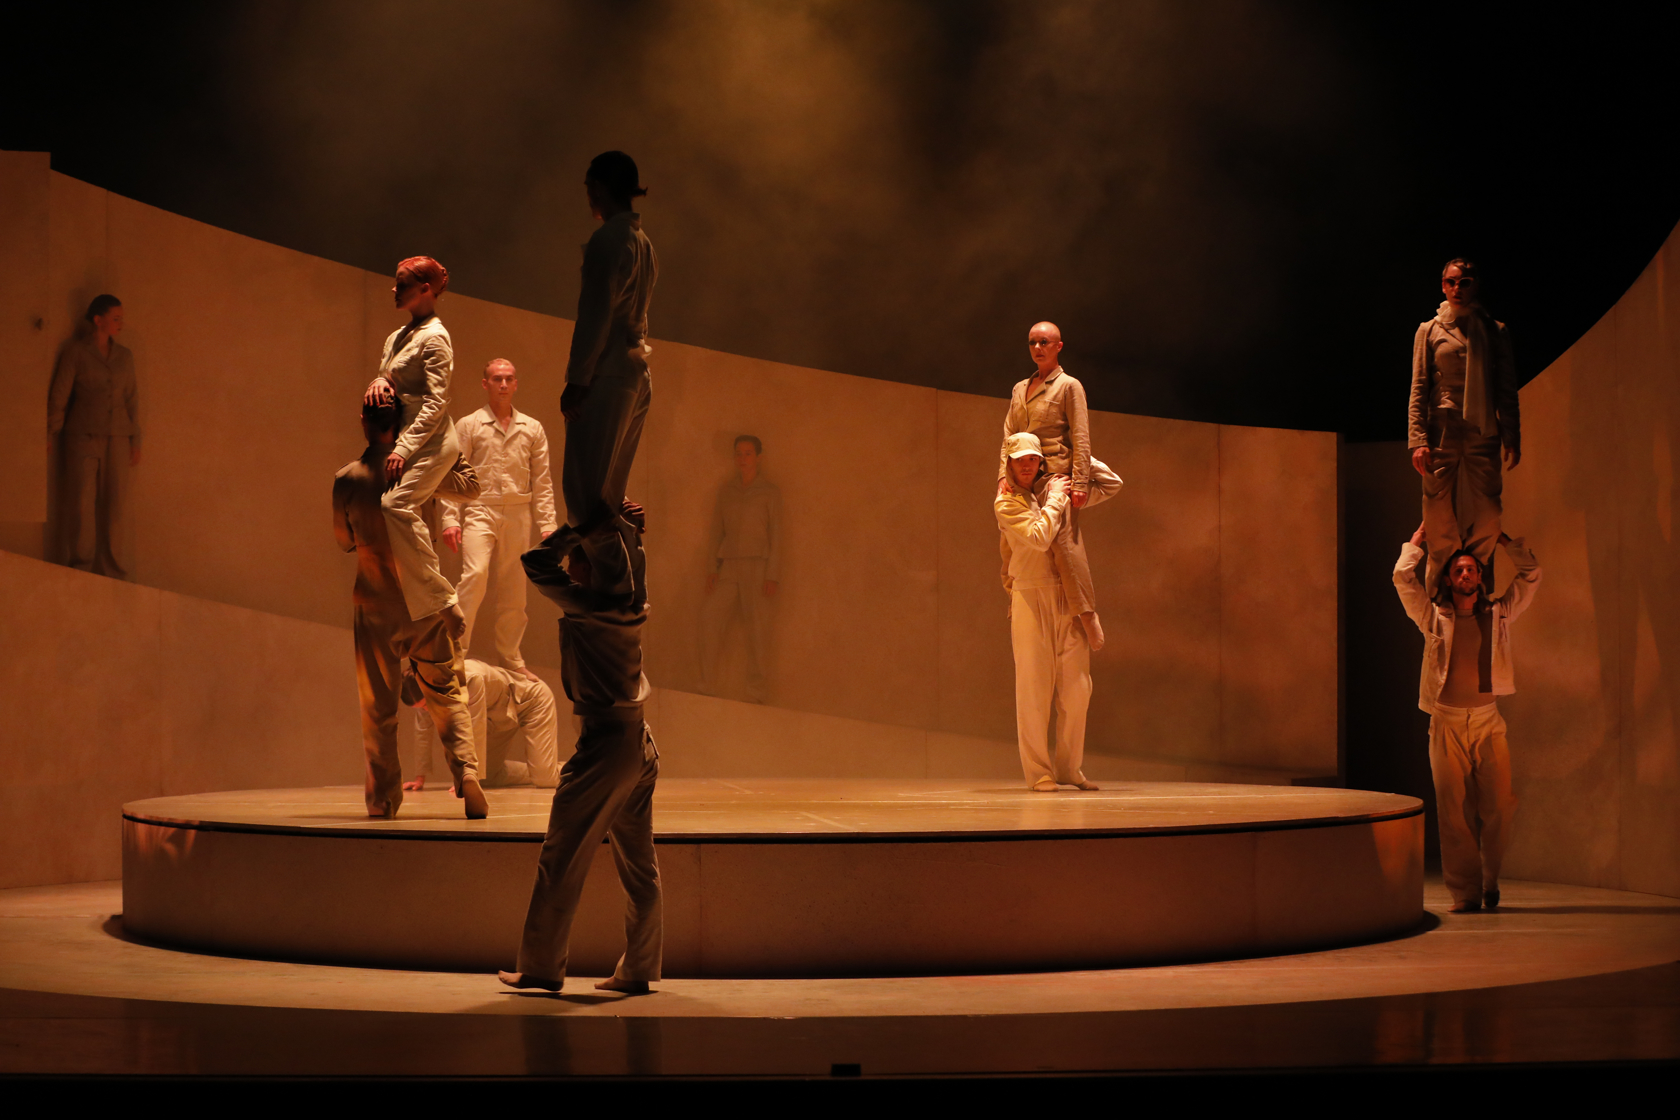 A group of dansers on a round stage in orange lighting with smoke. A few of them standing on eachothers shoulders.